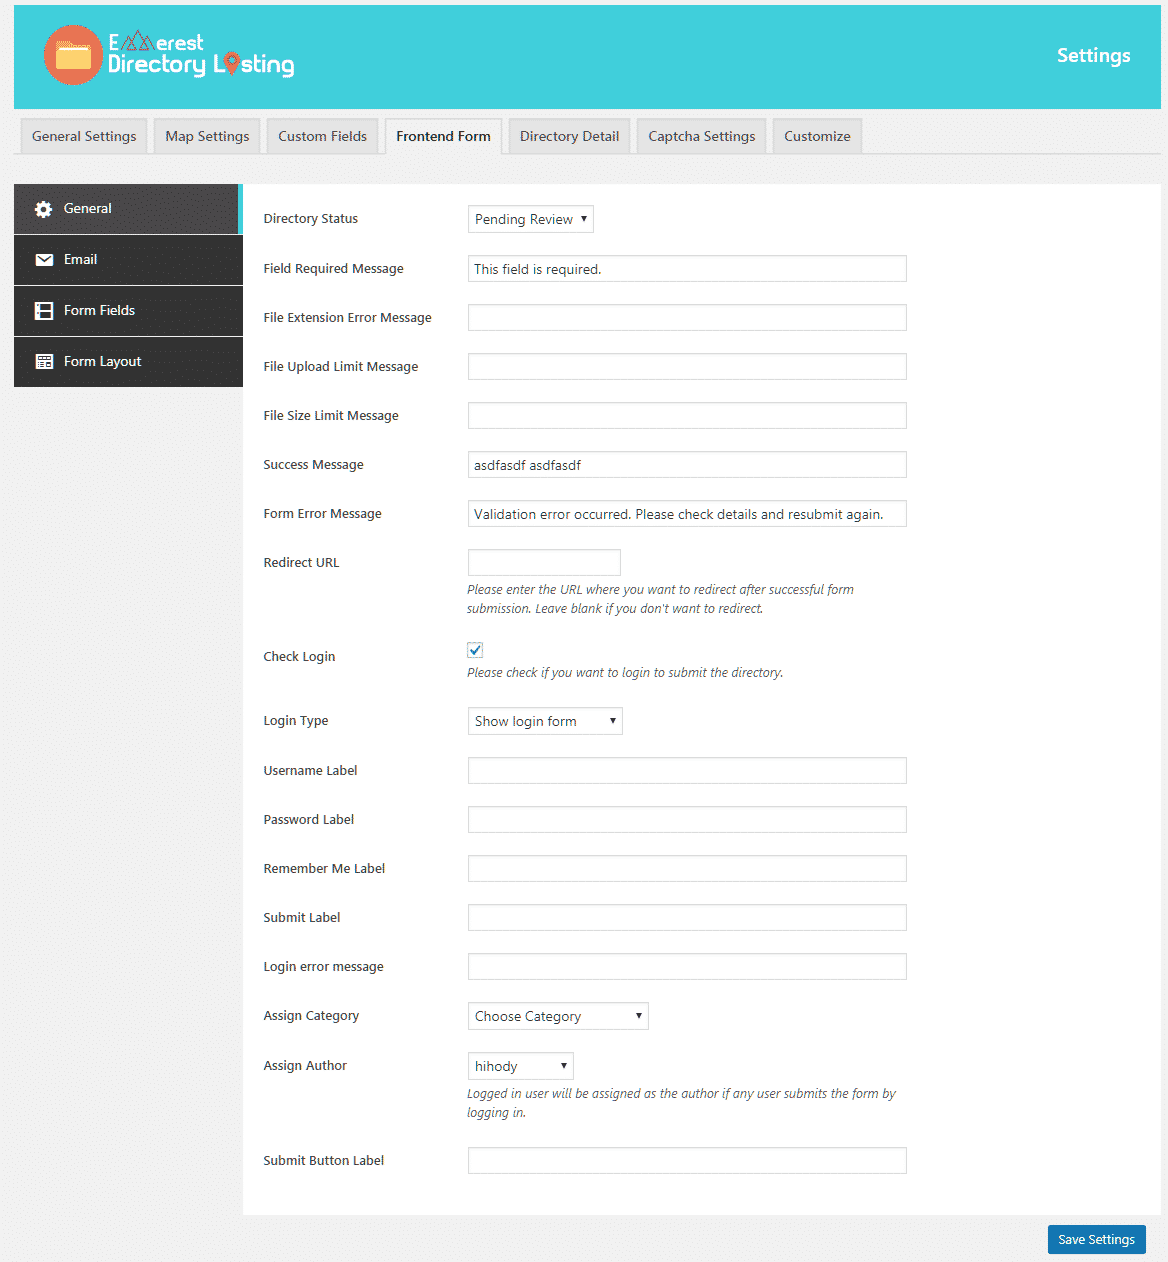 Everest Business Directory: Form General Settings